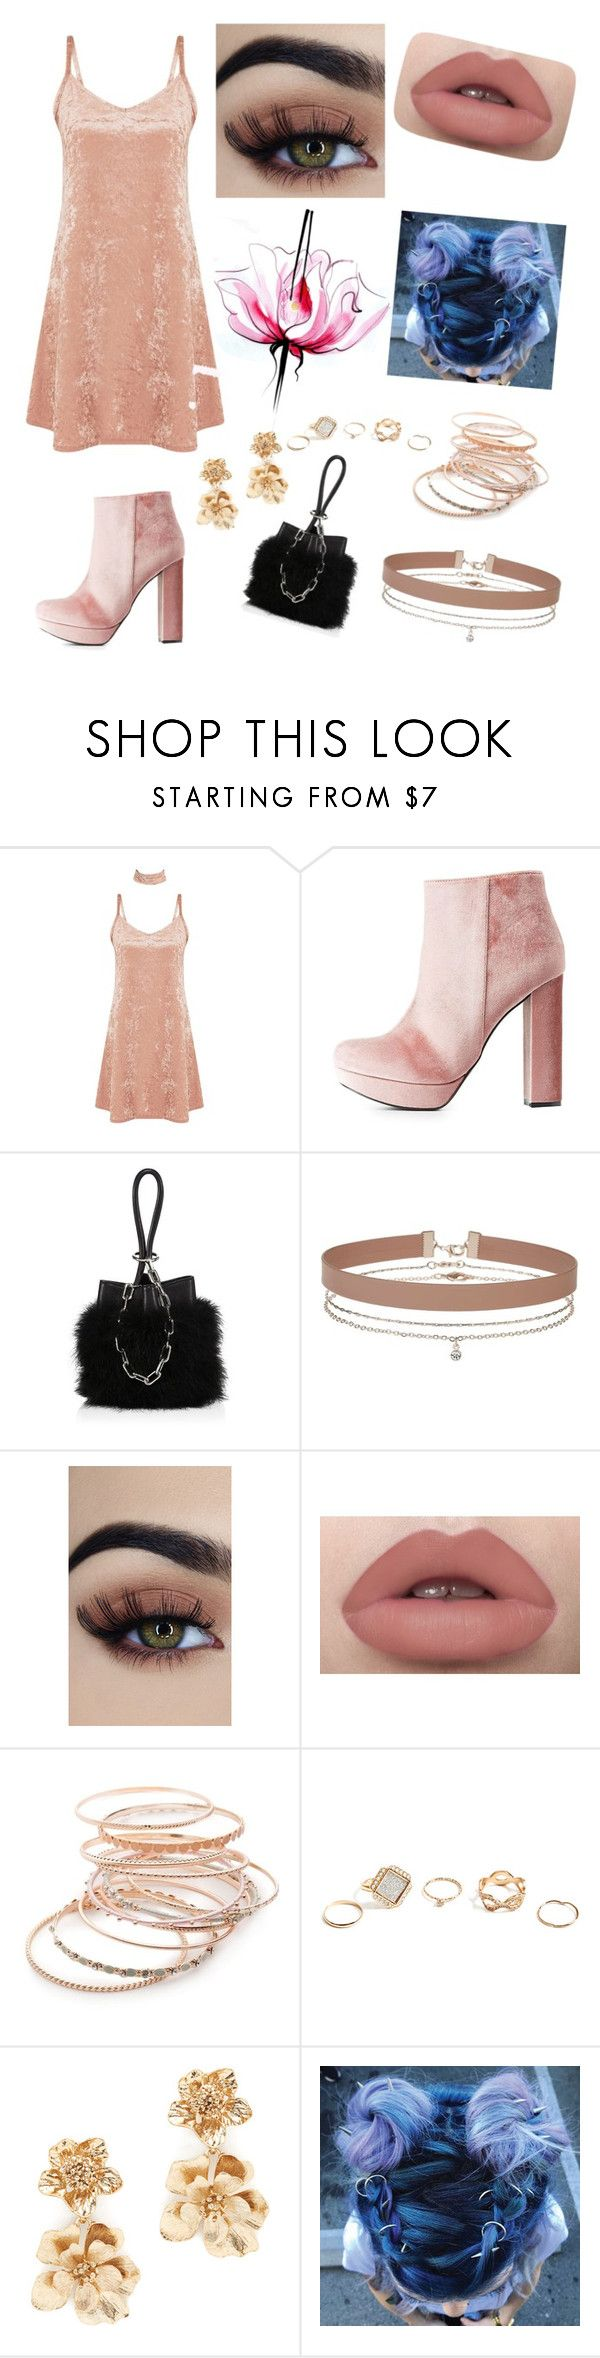 """""""Untitled #15"""" by minion-nini ❤ liked on Polyvore featuring Charlotte Russe, Alexander Wang, Miss Selfridge, Red Camel, GUESS, Oscar de la Renta and Lancôme"""